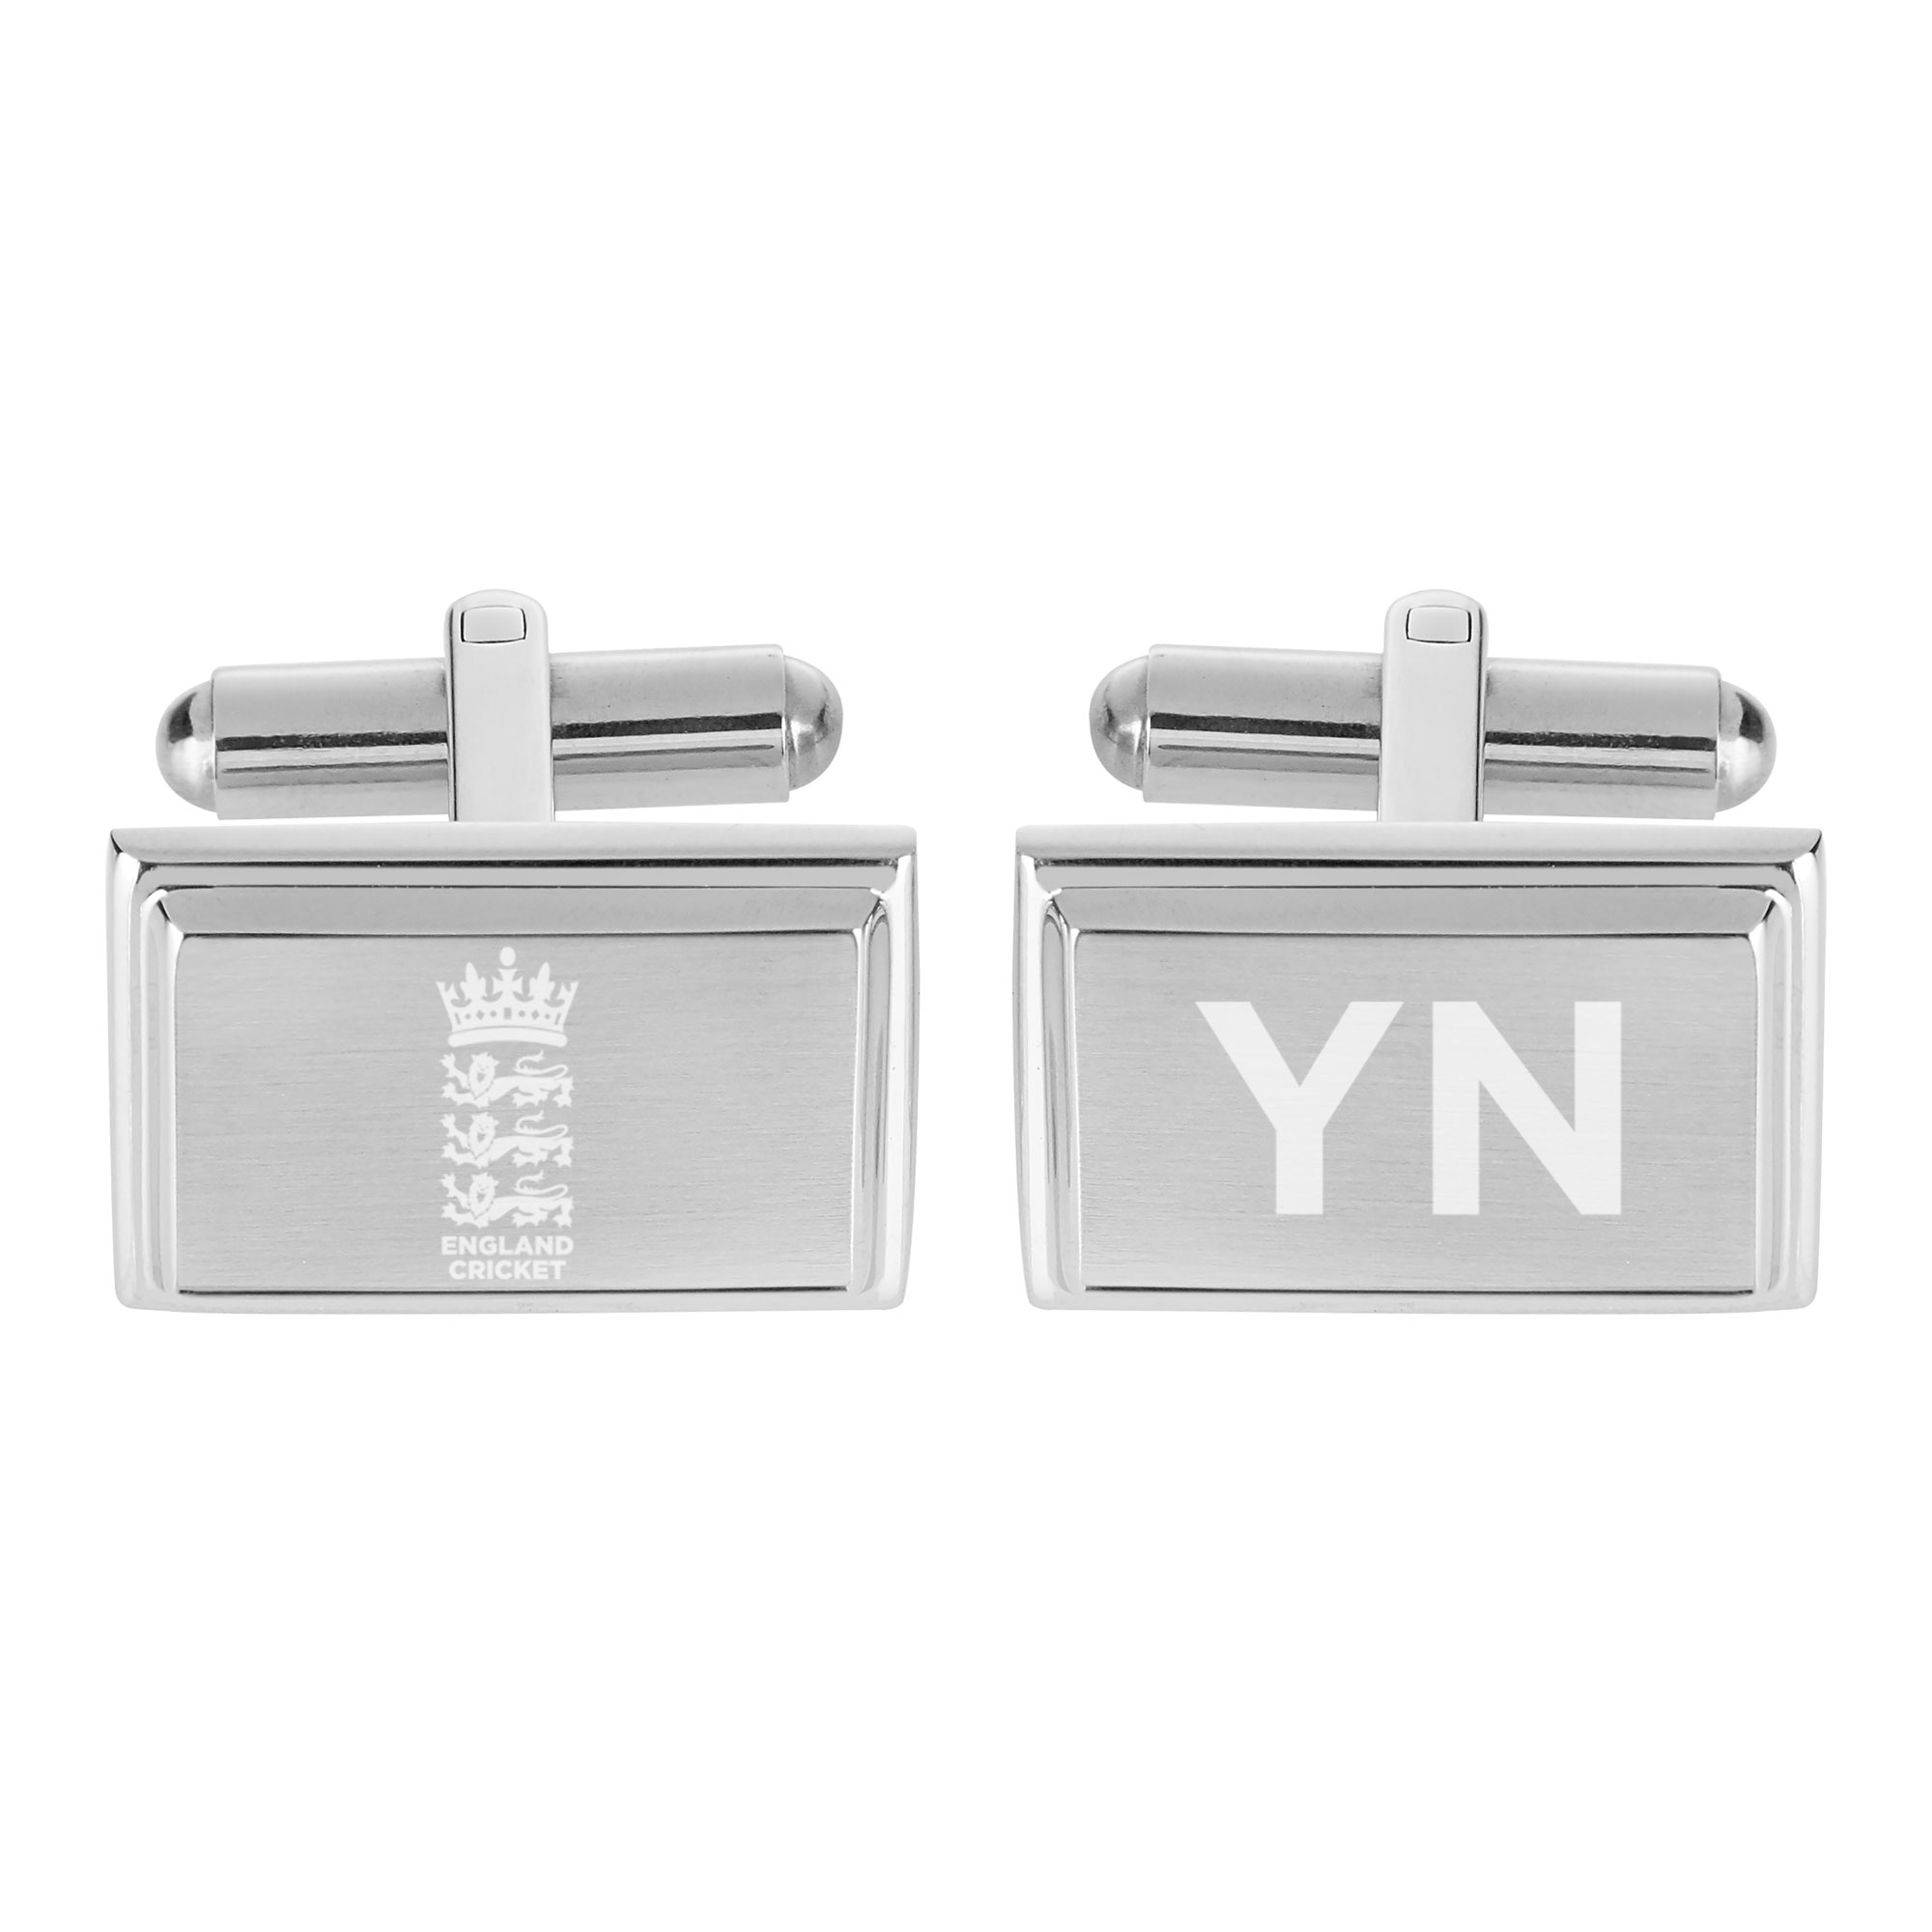 England Cricket Crest Cufflinks